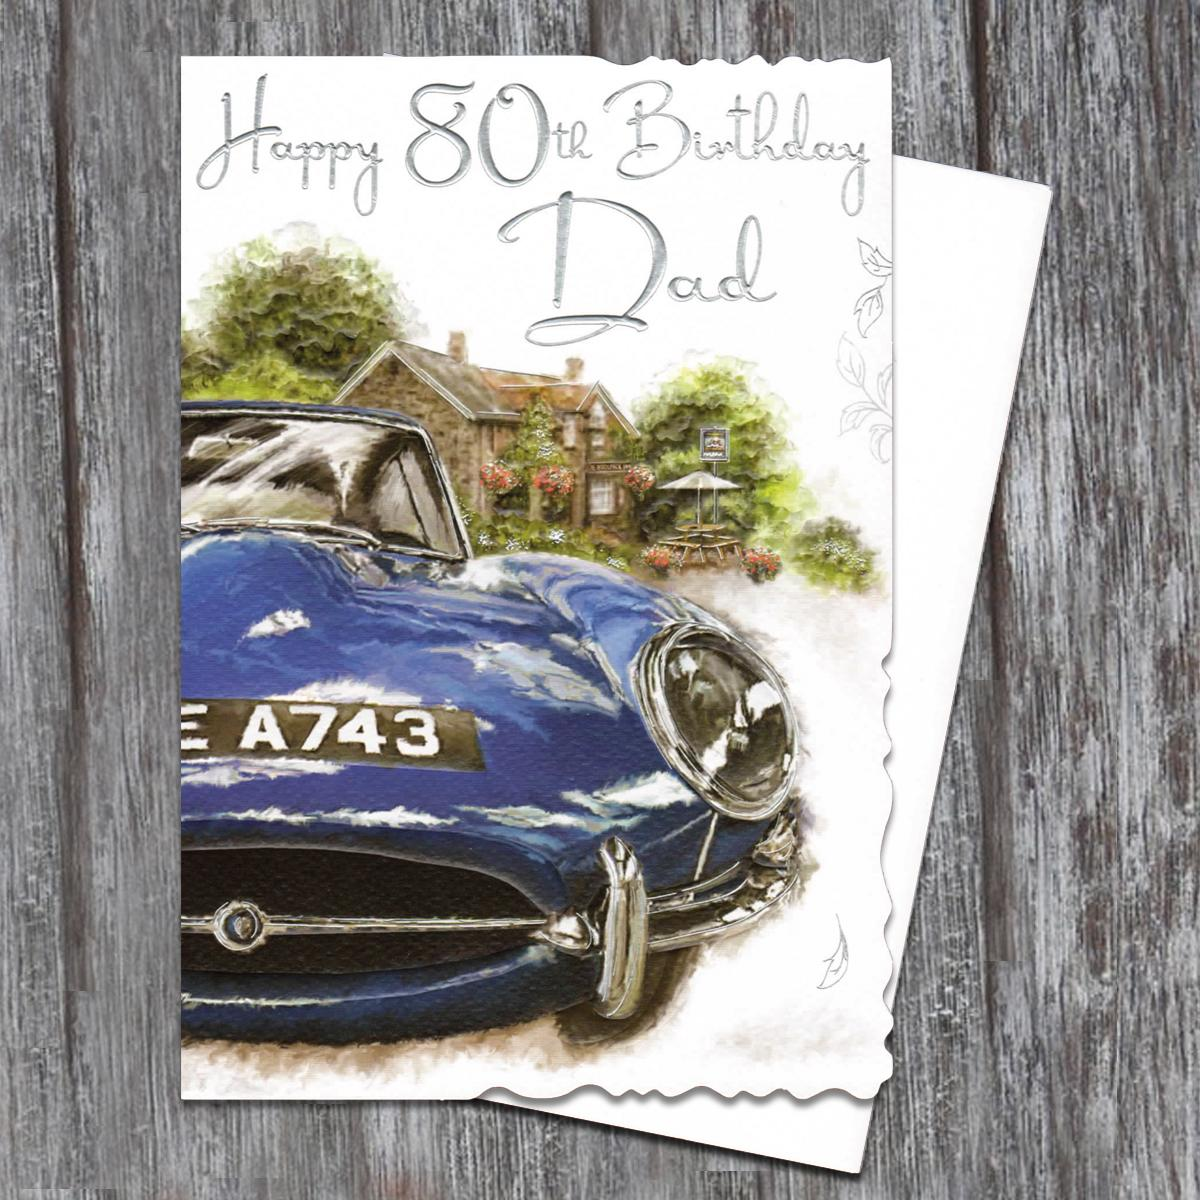 Dad Age 80 Birthday Card Alongside Its White Envelope